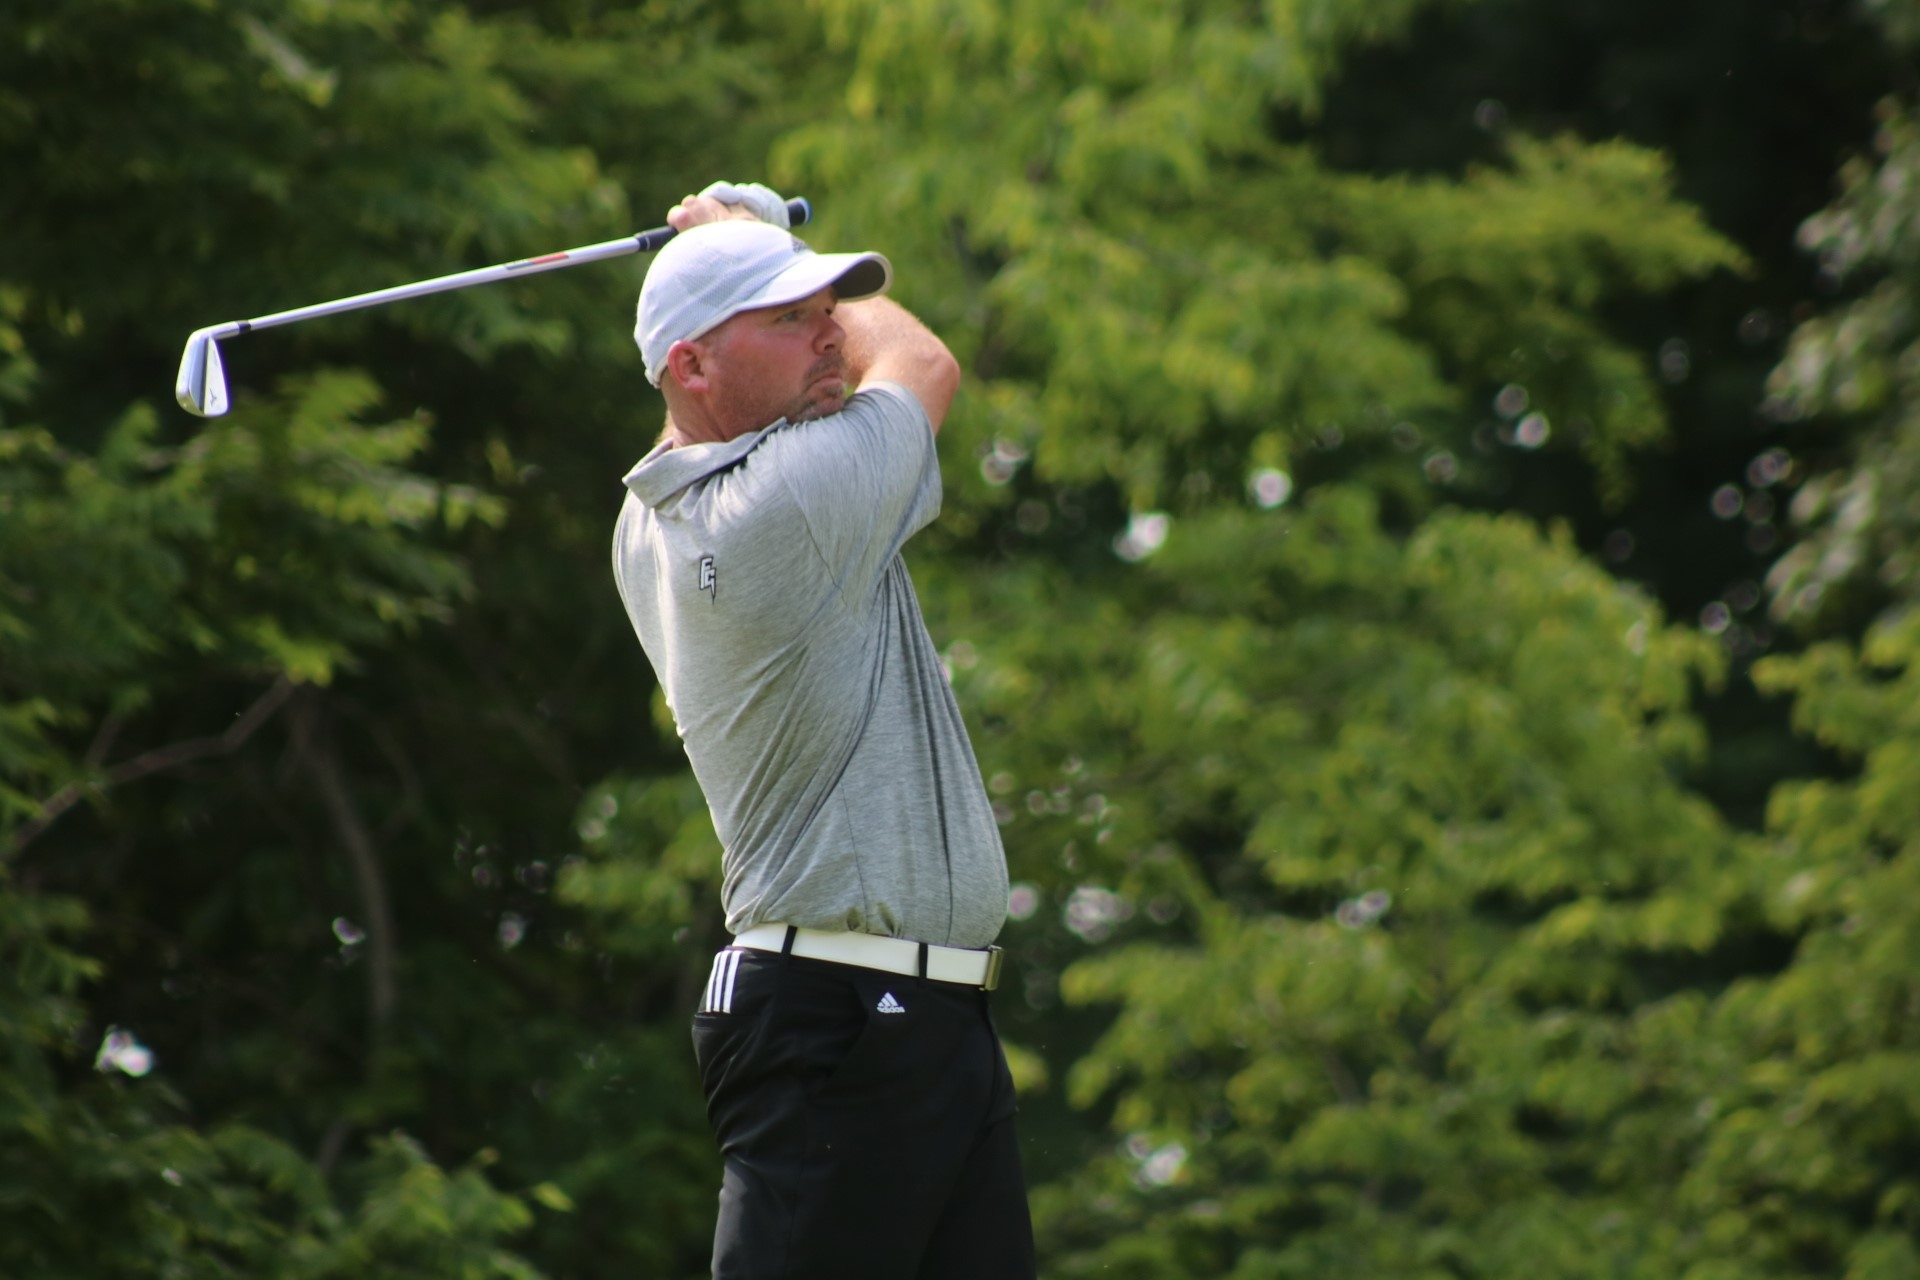 Rowen Leads by Experience at Otter Creek